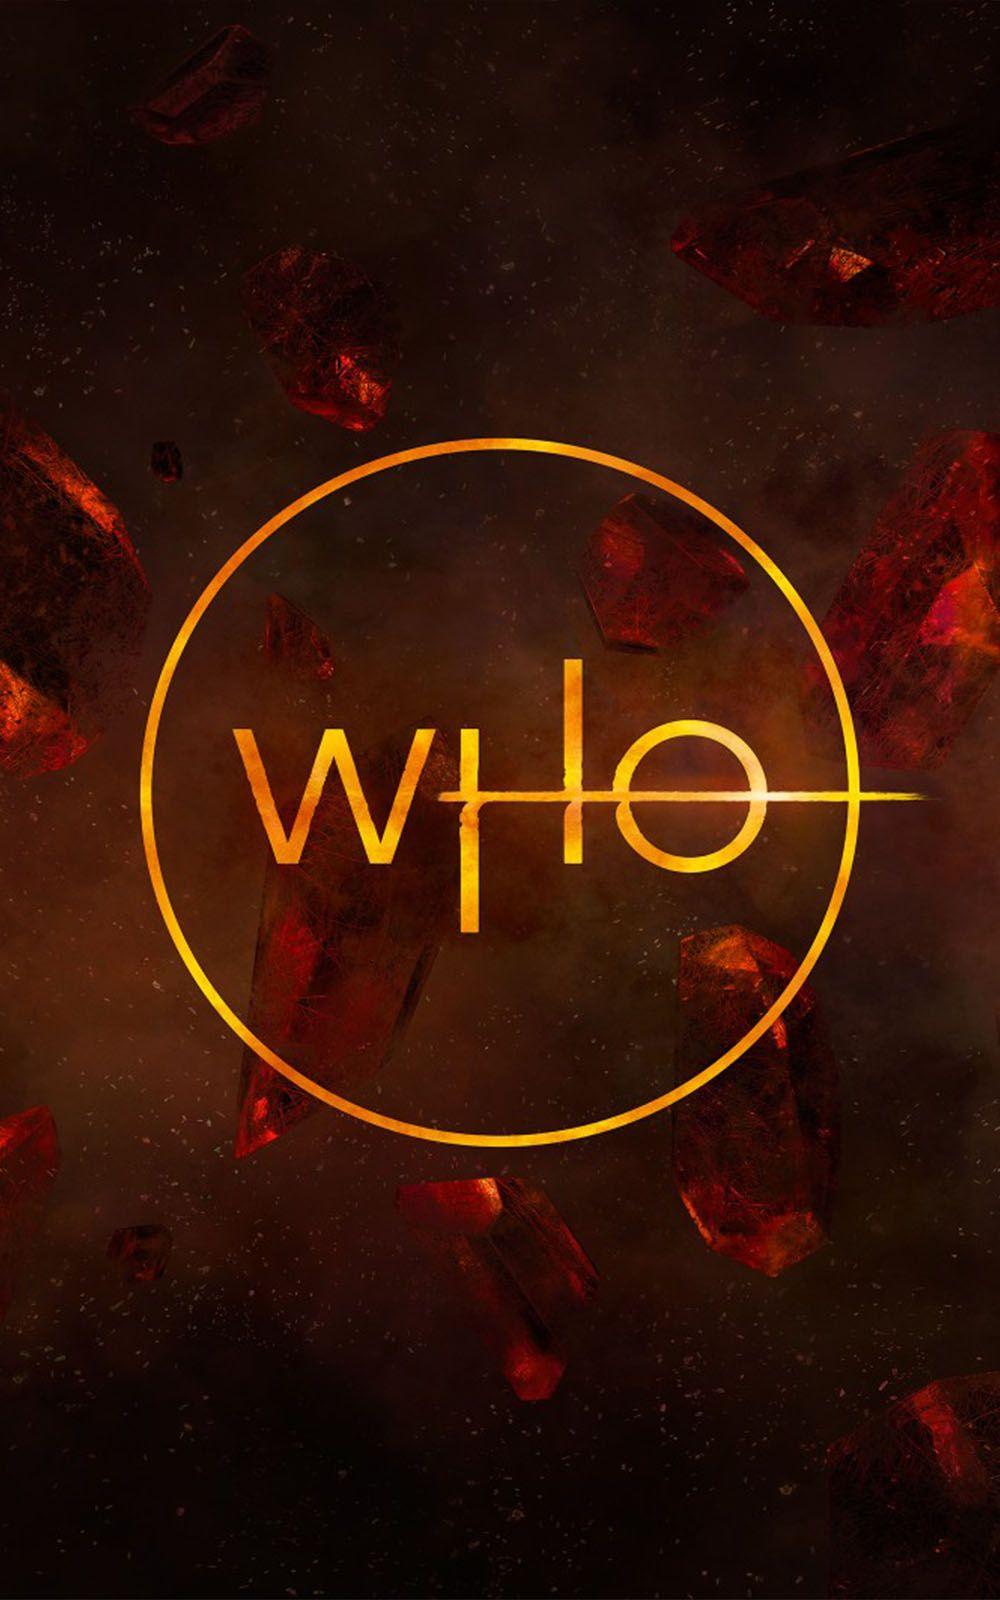 Doctor Who Season 11 Hd Mobile Wallpaper Doctor Who Wallpaper Doctor Who Logo Dr Who Wallpaper